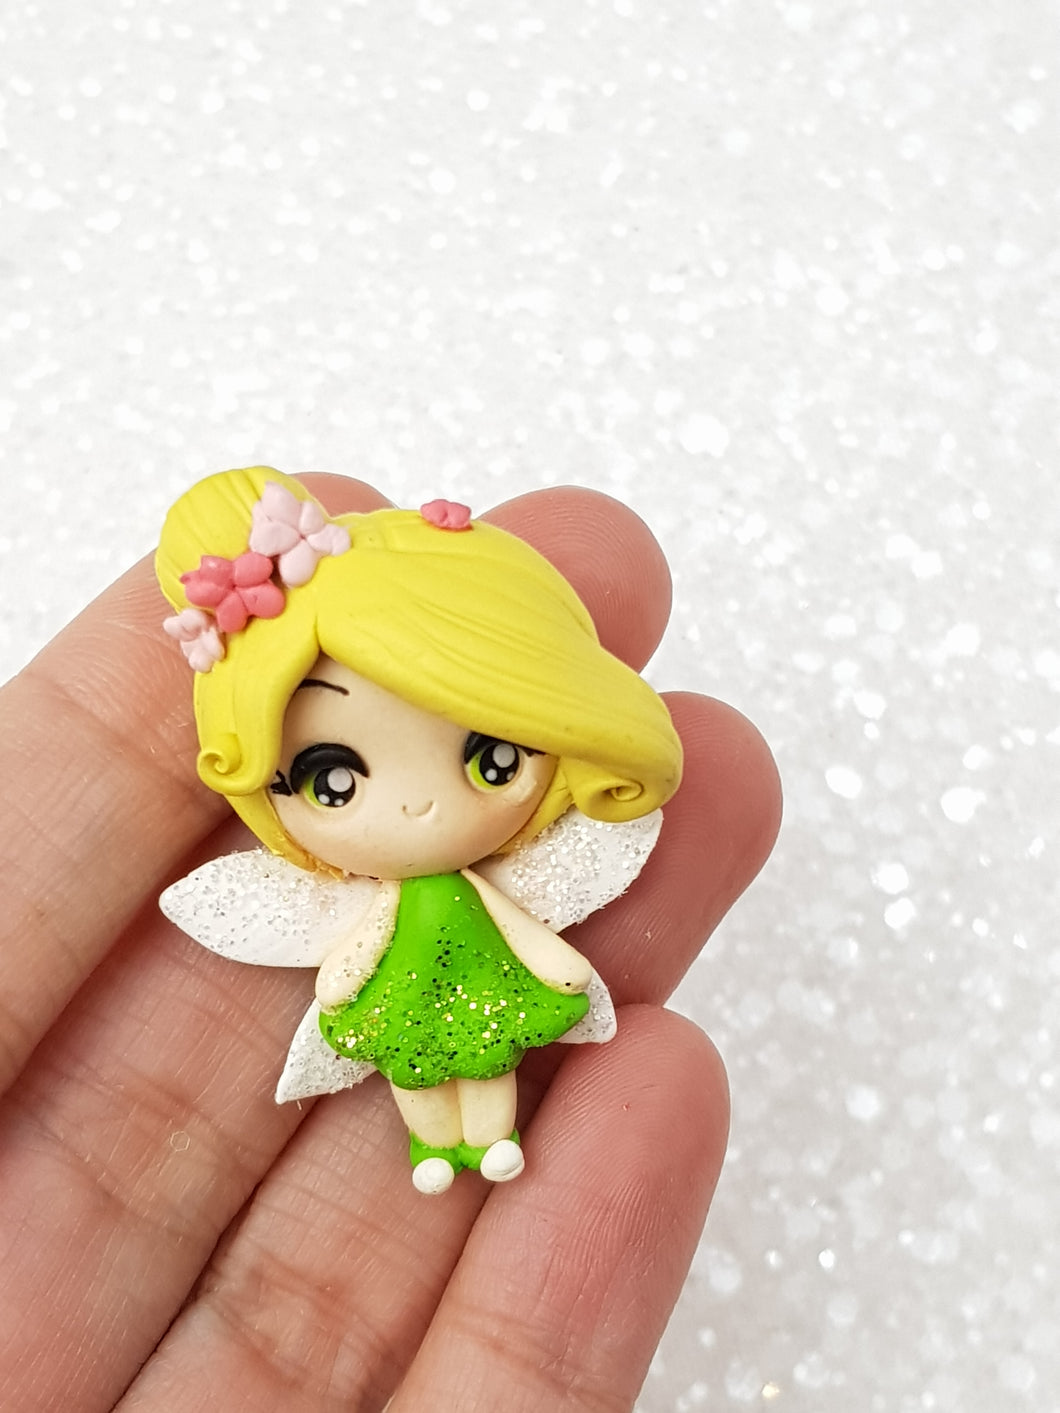 Clay Charm Embellishment - Fairy E Green approx 4cm tall - Crafty Mood